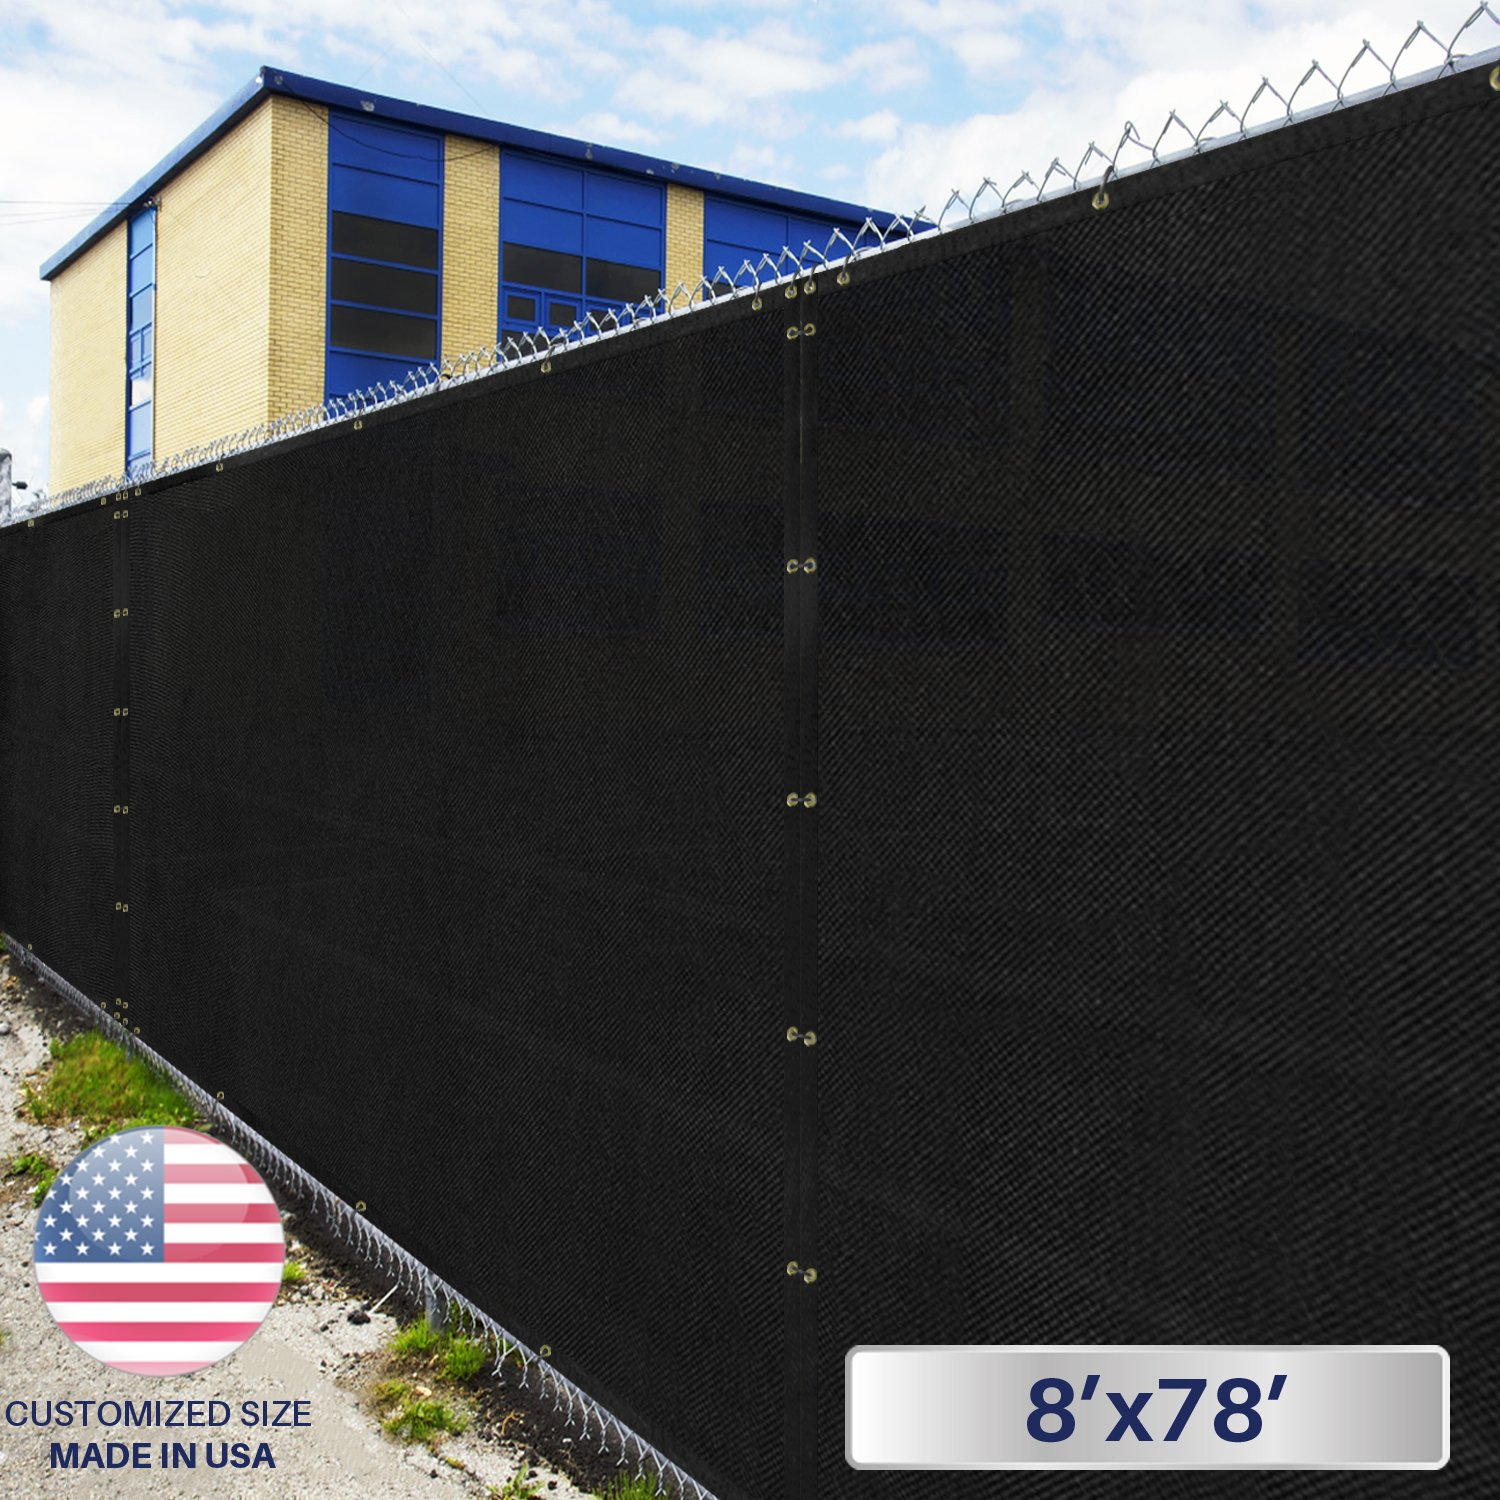 8' x 78' Privacy Fence Screen in Black with Brass Grommet 85% Blockage Windscreen Outdoor Mesh Fencing Cover Netting 150GSM Fabric - Custom Size